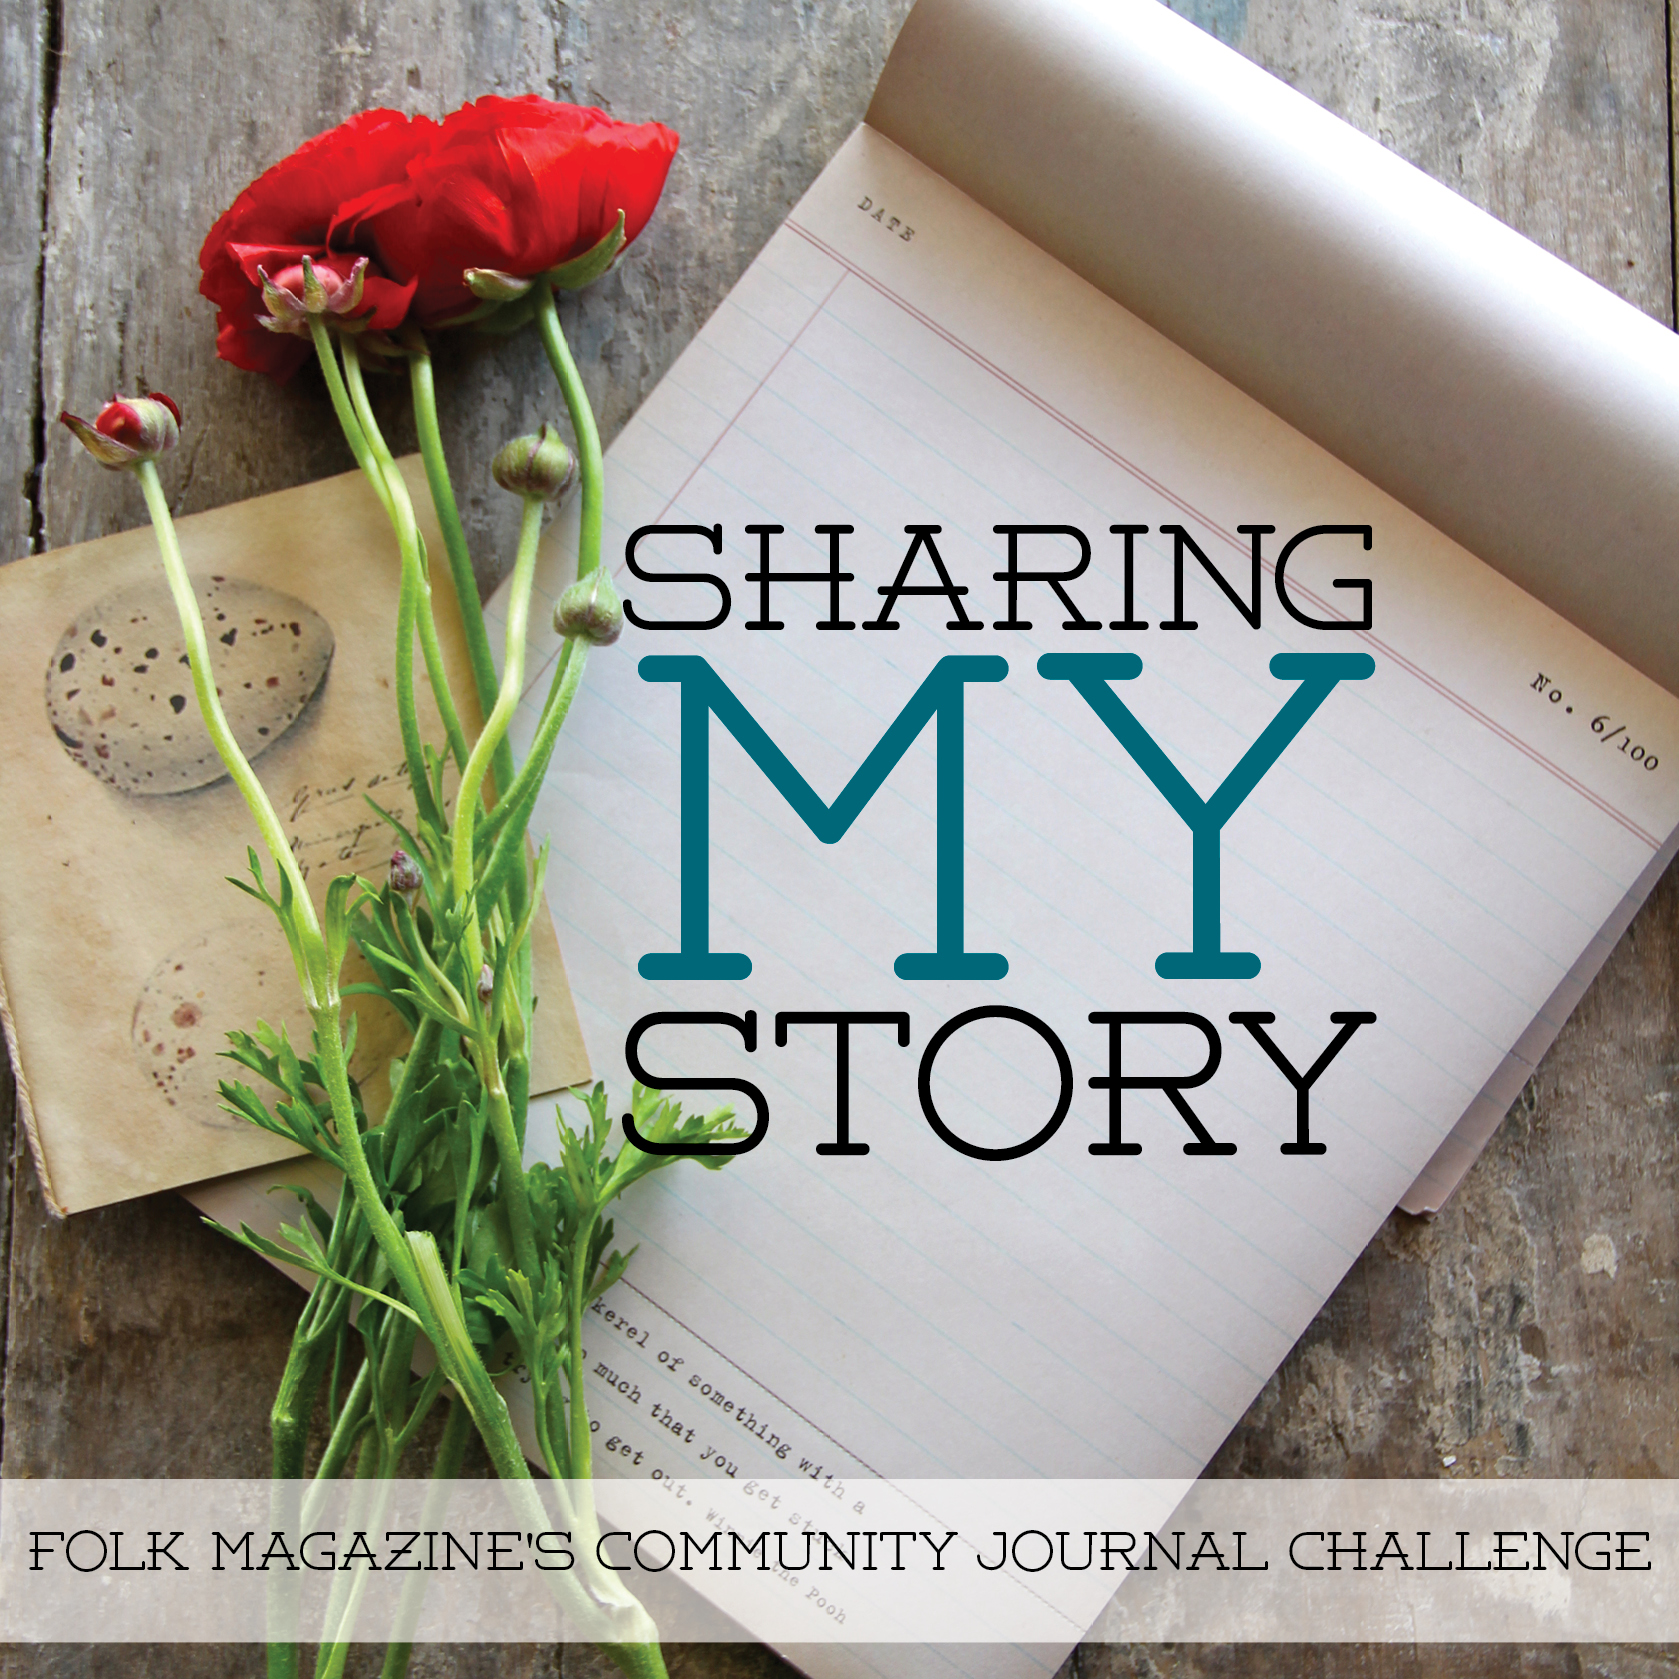 FOLK-sharemystory